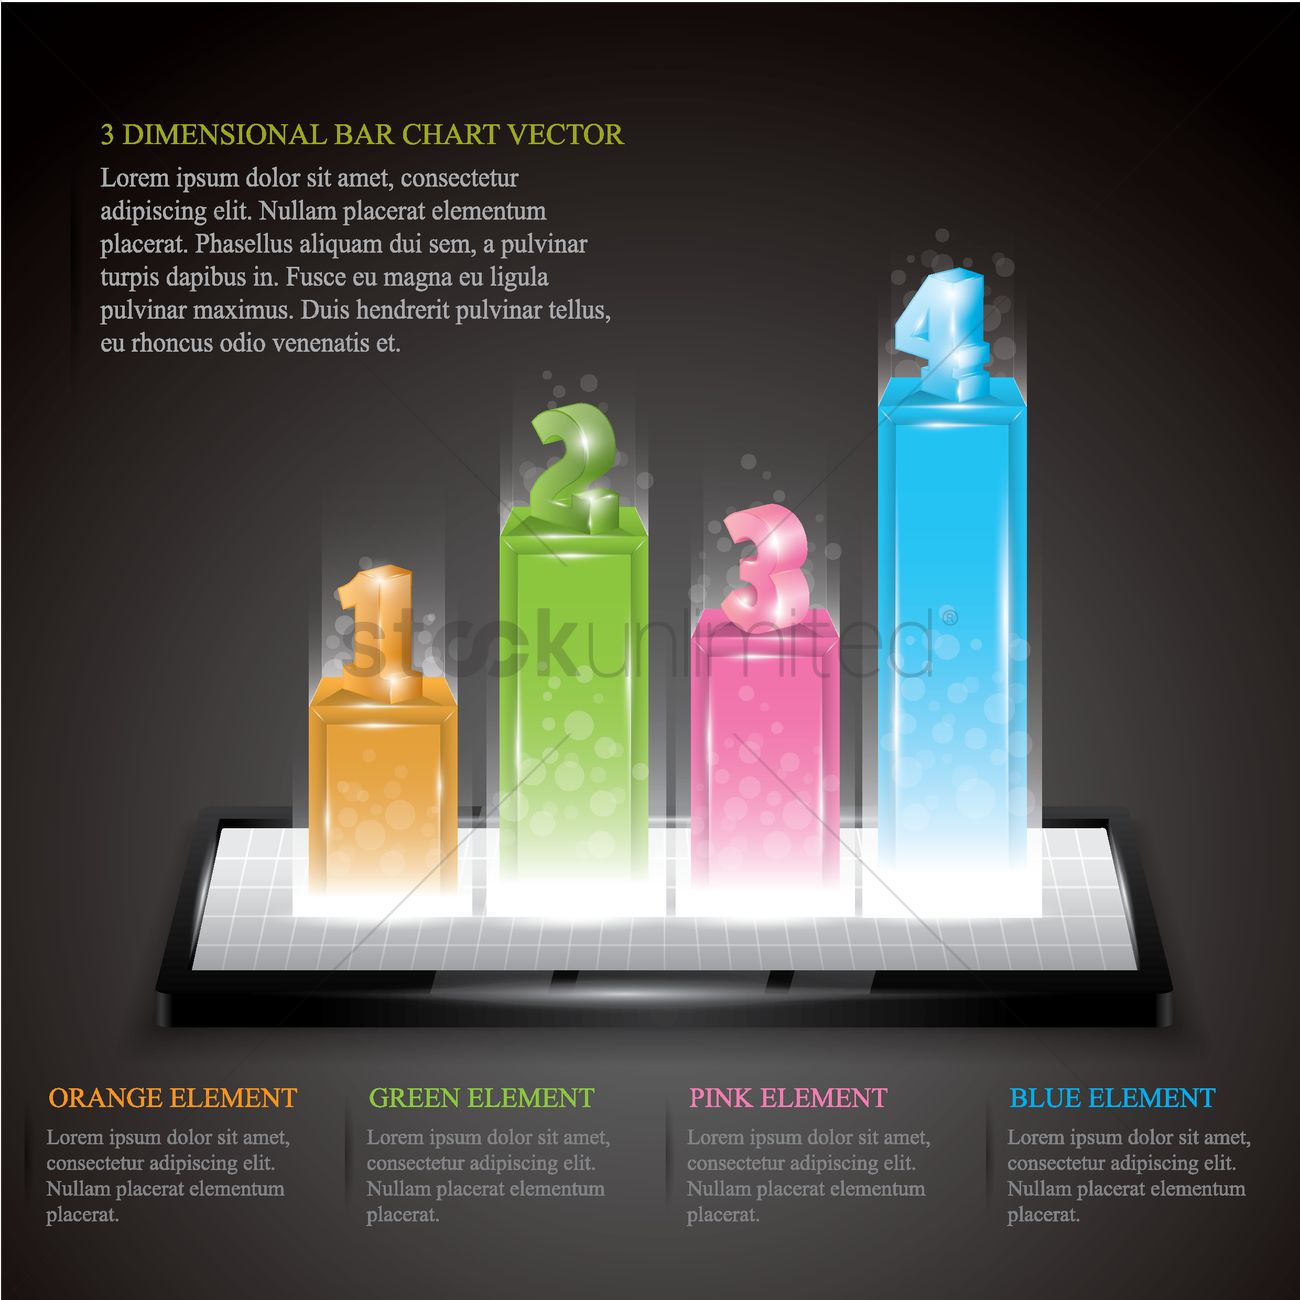 3d infographic bar chart vector image - 1566801 | stockunlimited